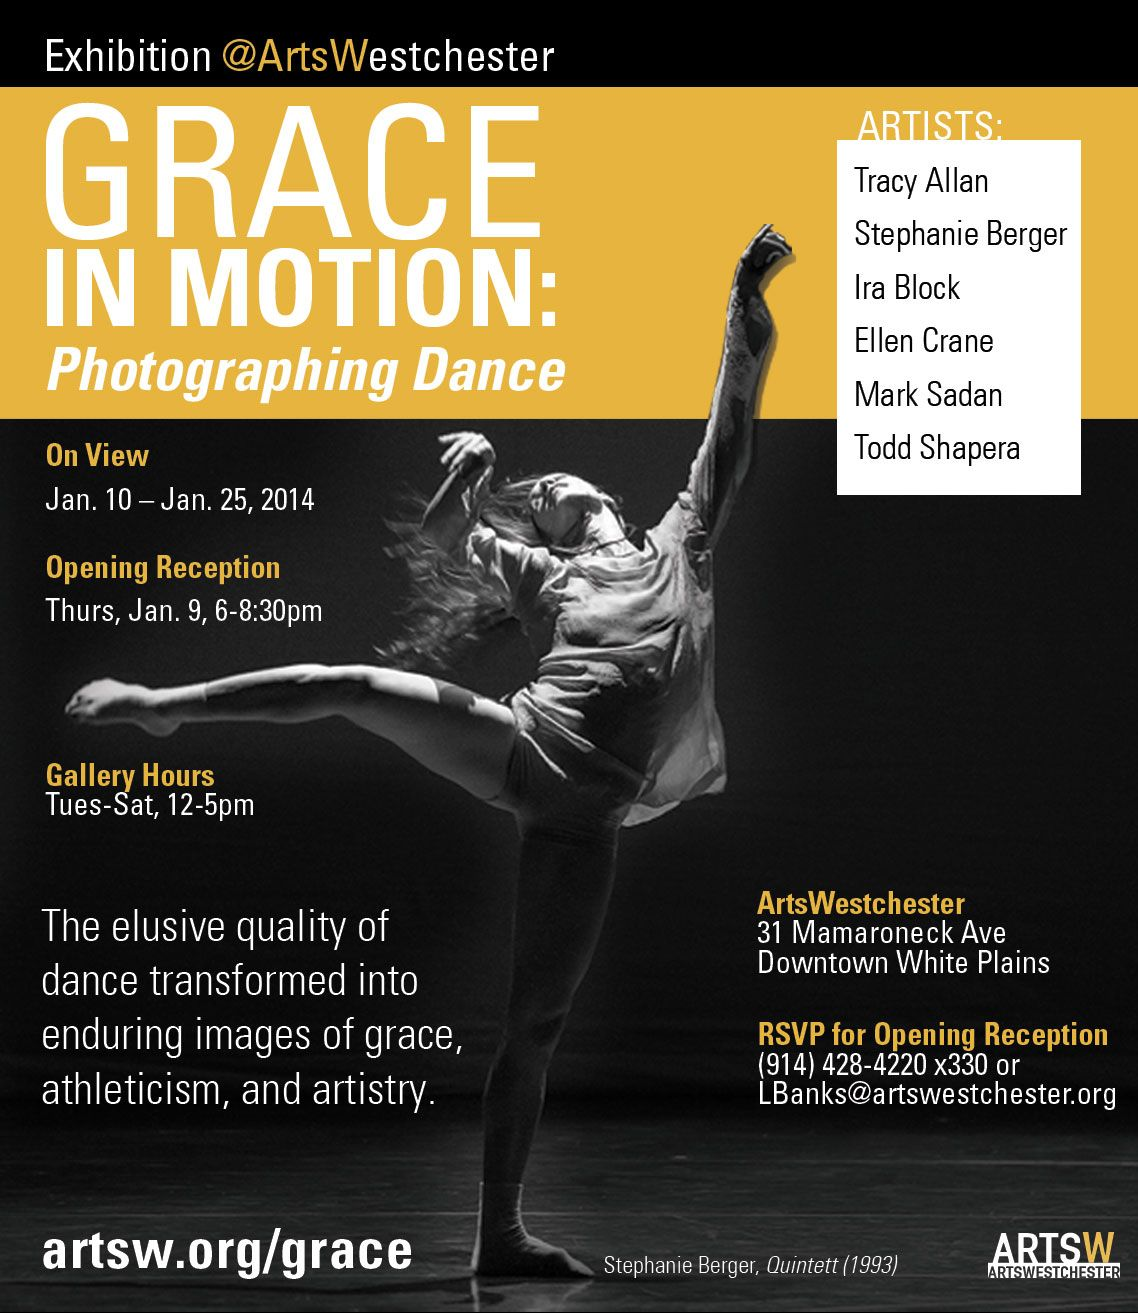 An Exhibit of Dance Photography